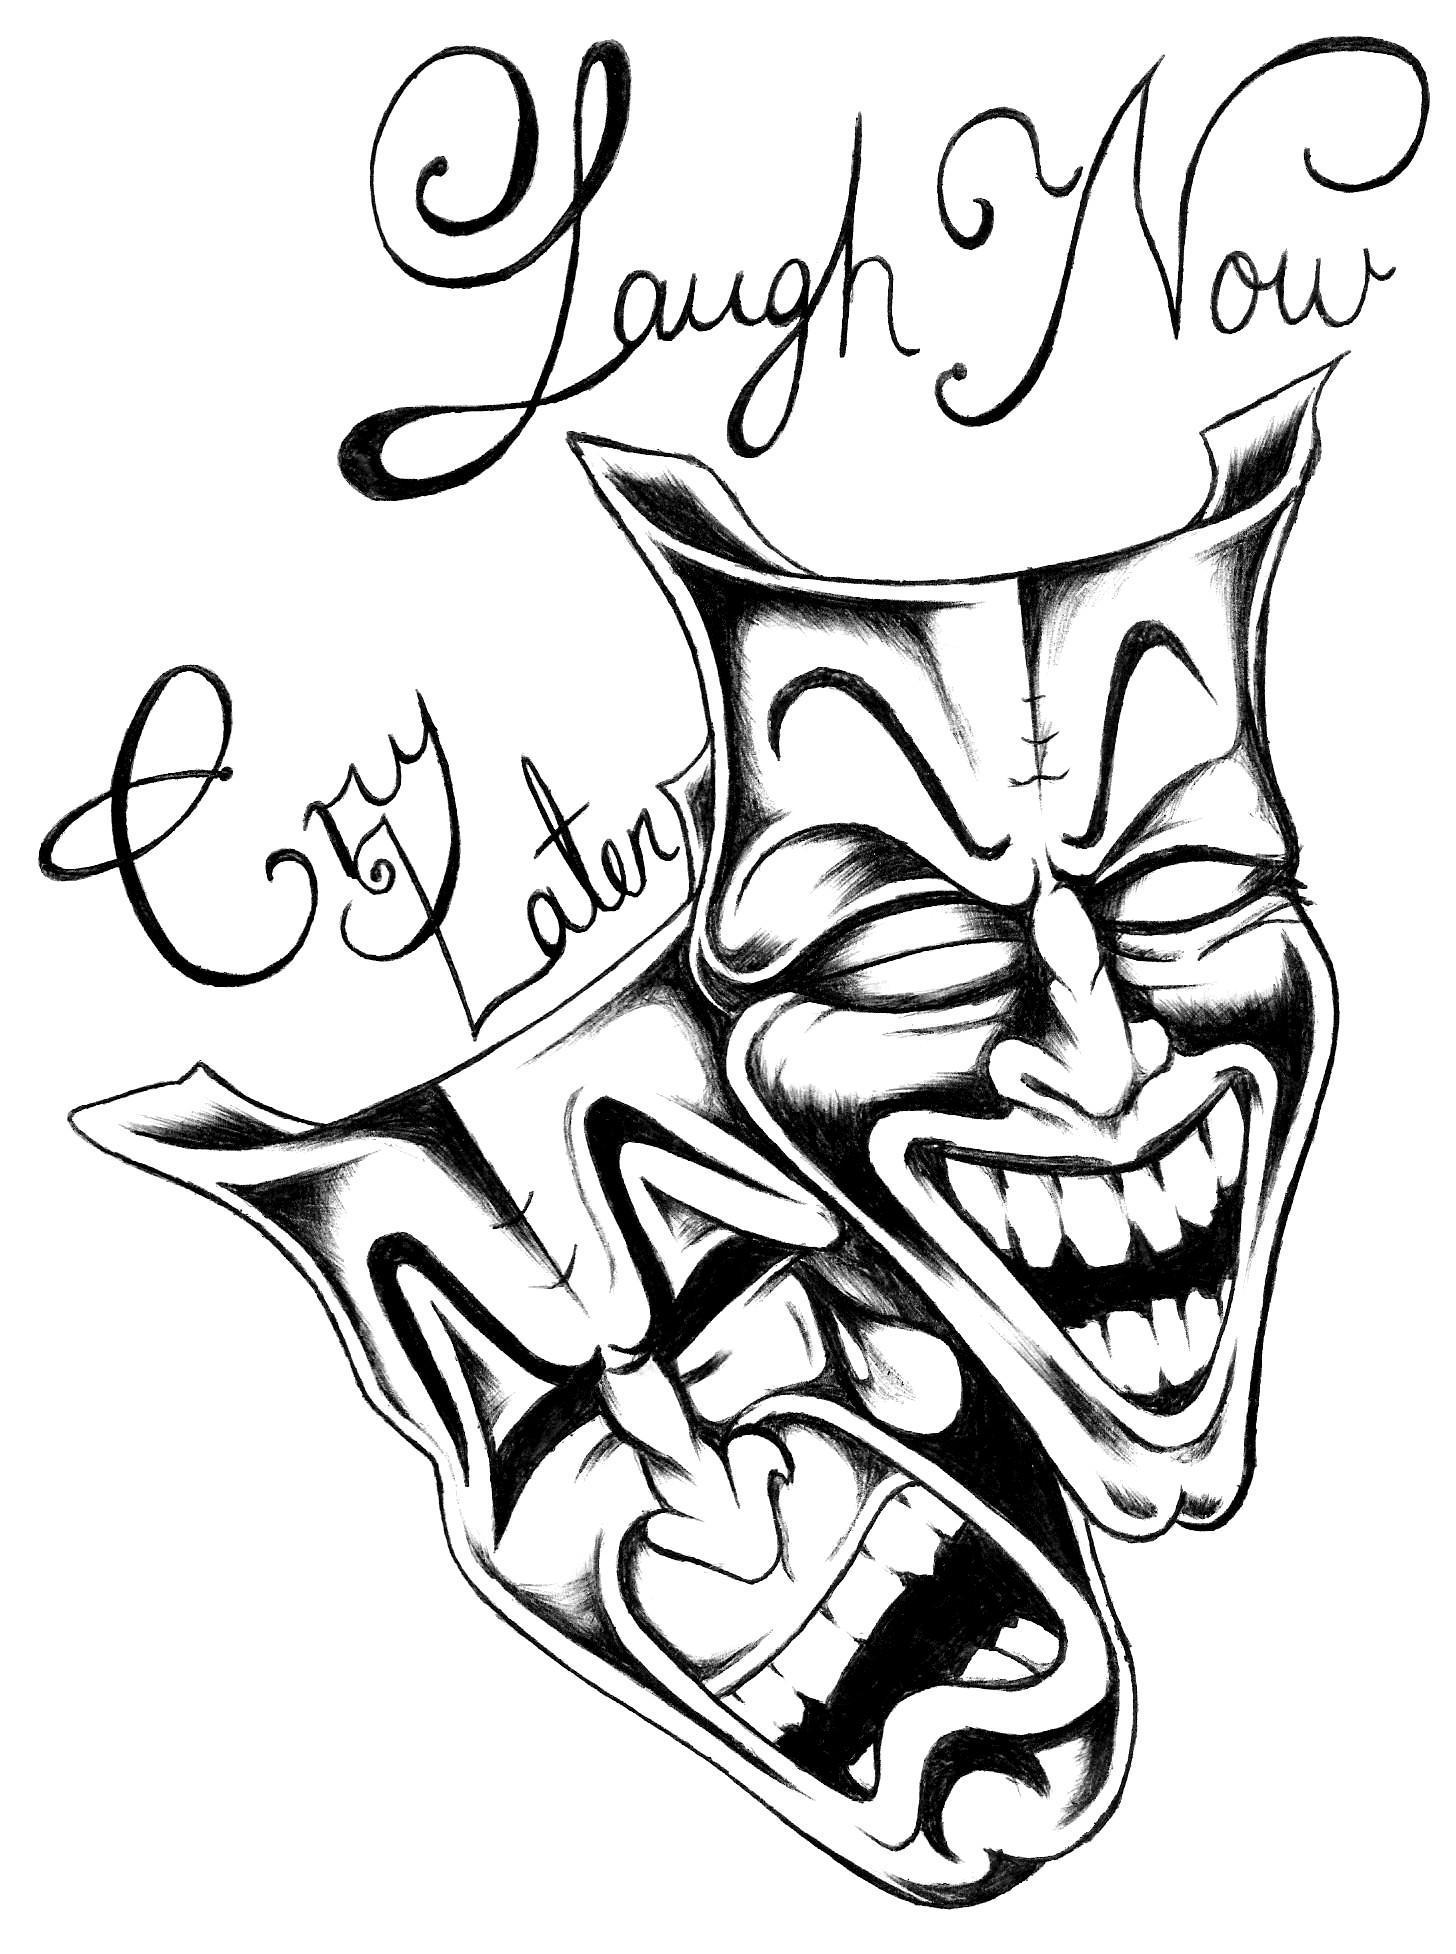 Cry now Laugh later by brokenTear on DeviantArt